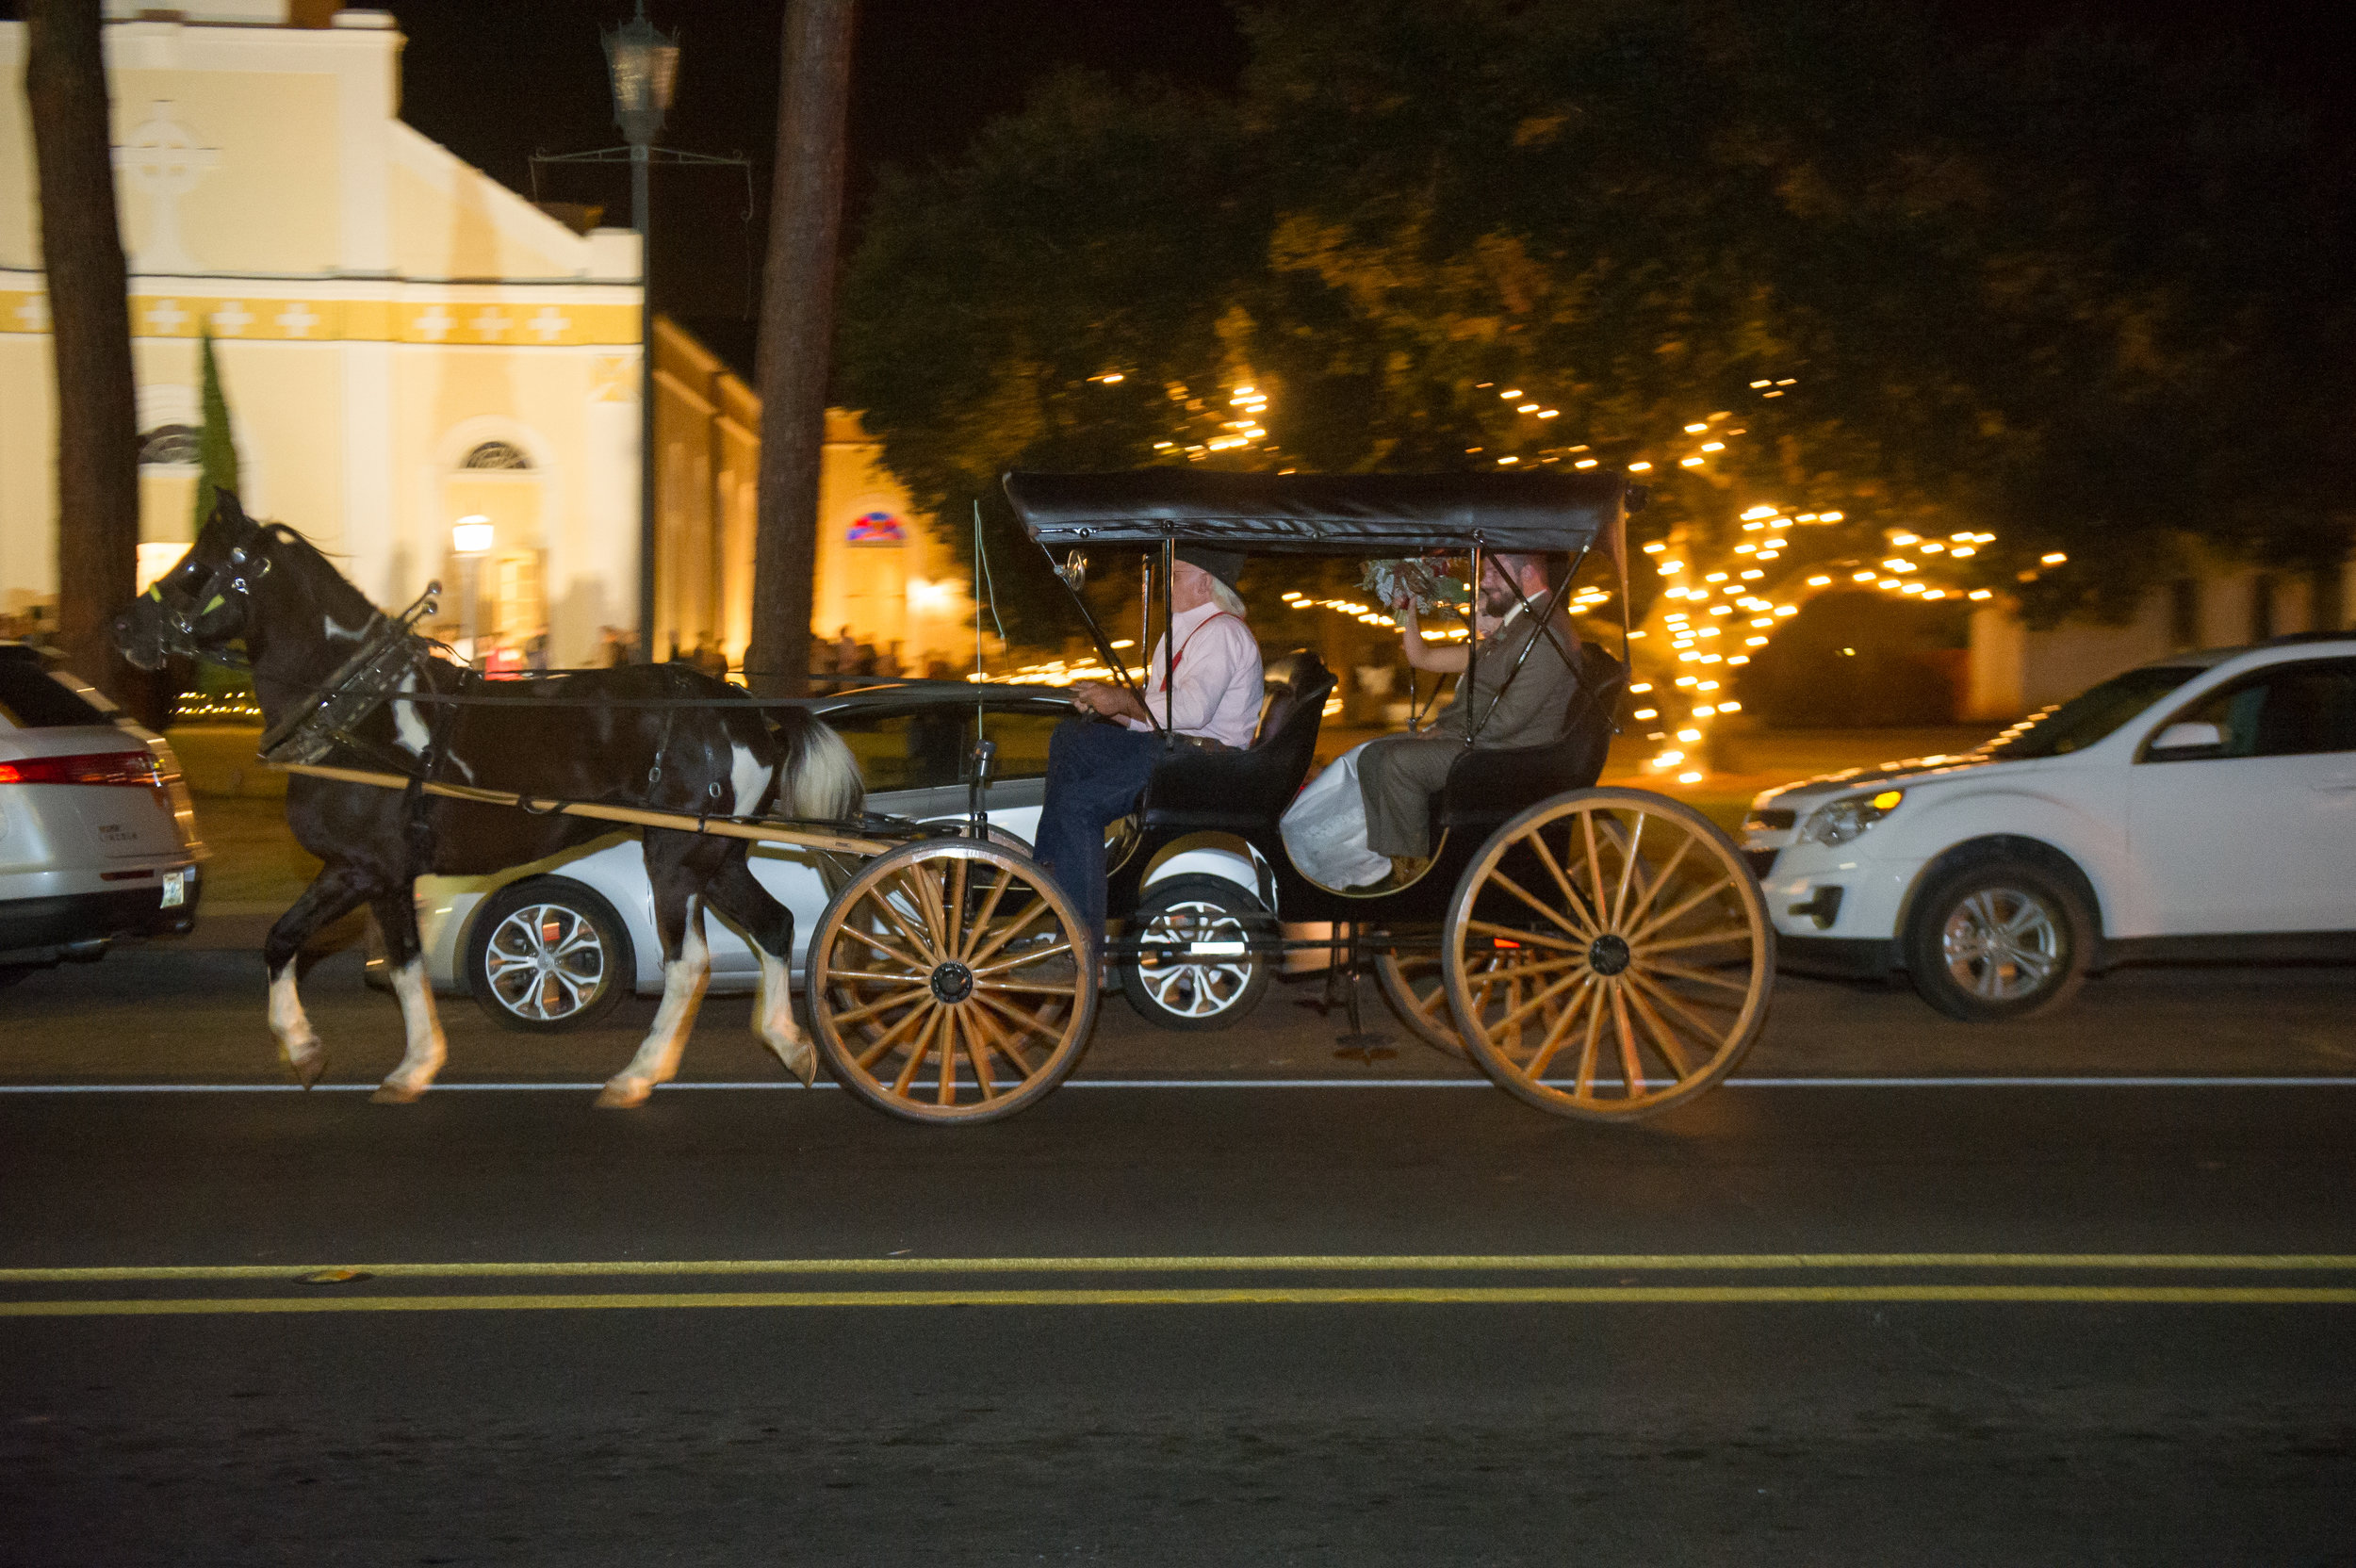 Southern Fete, Southern Wedding, Carriage ride